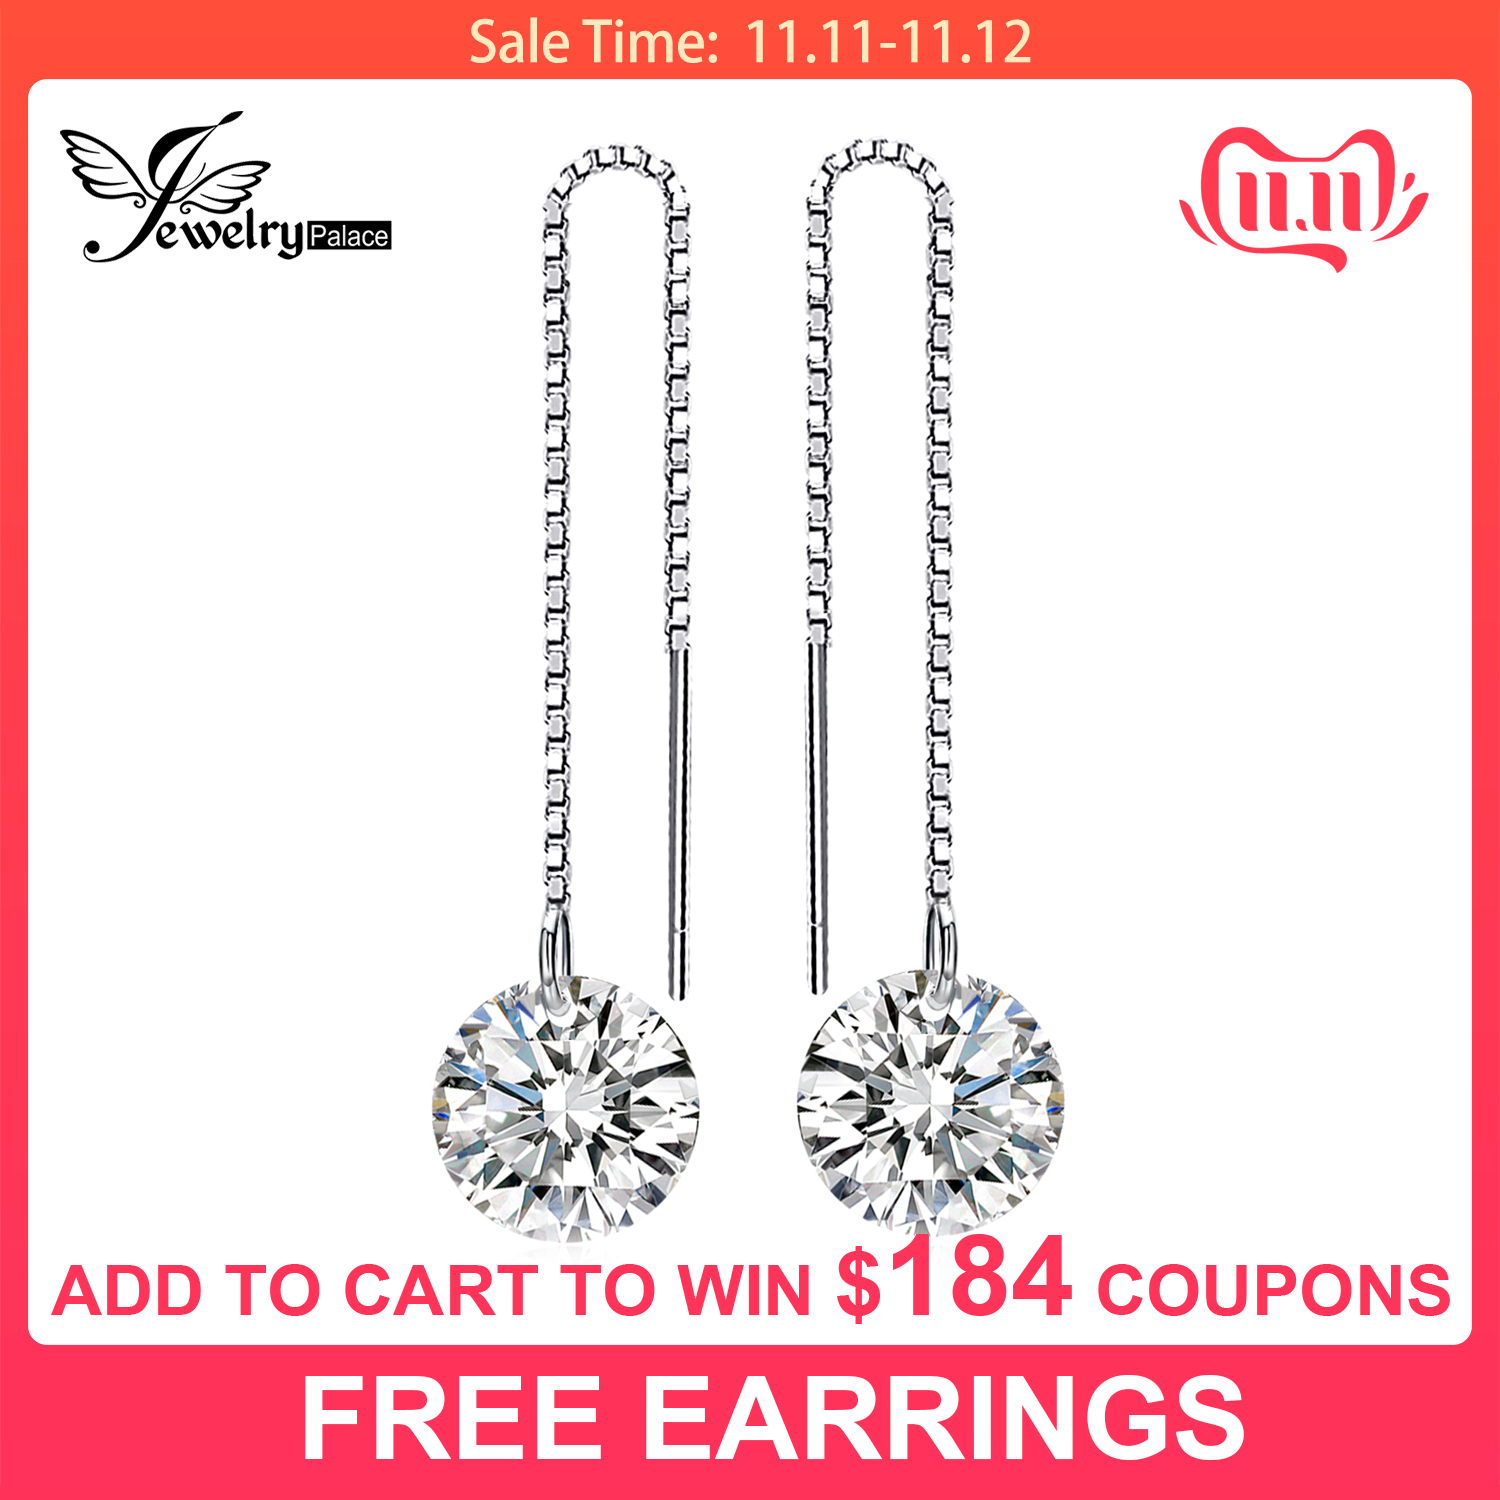 JewelryPalace Round Fashion 8mm 5.0ct Linked Earrings Genuine 925 Sterling Silver New For Women Fine Jewelry Birthday Present